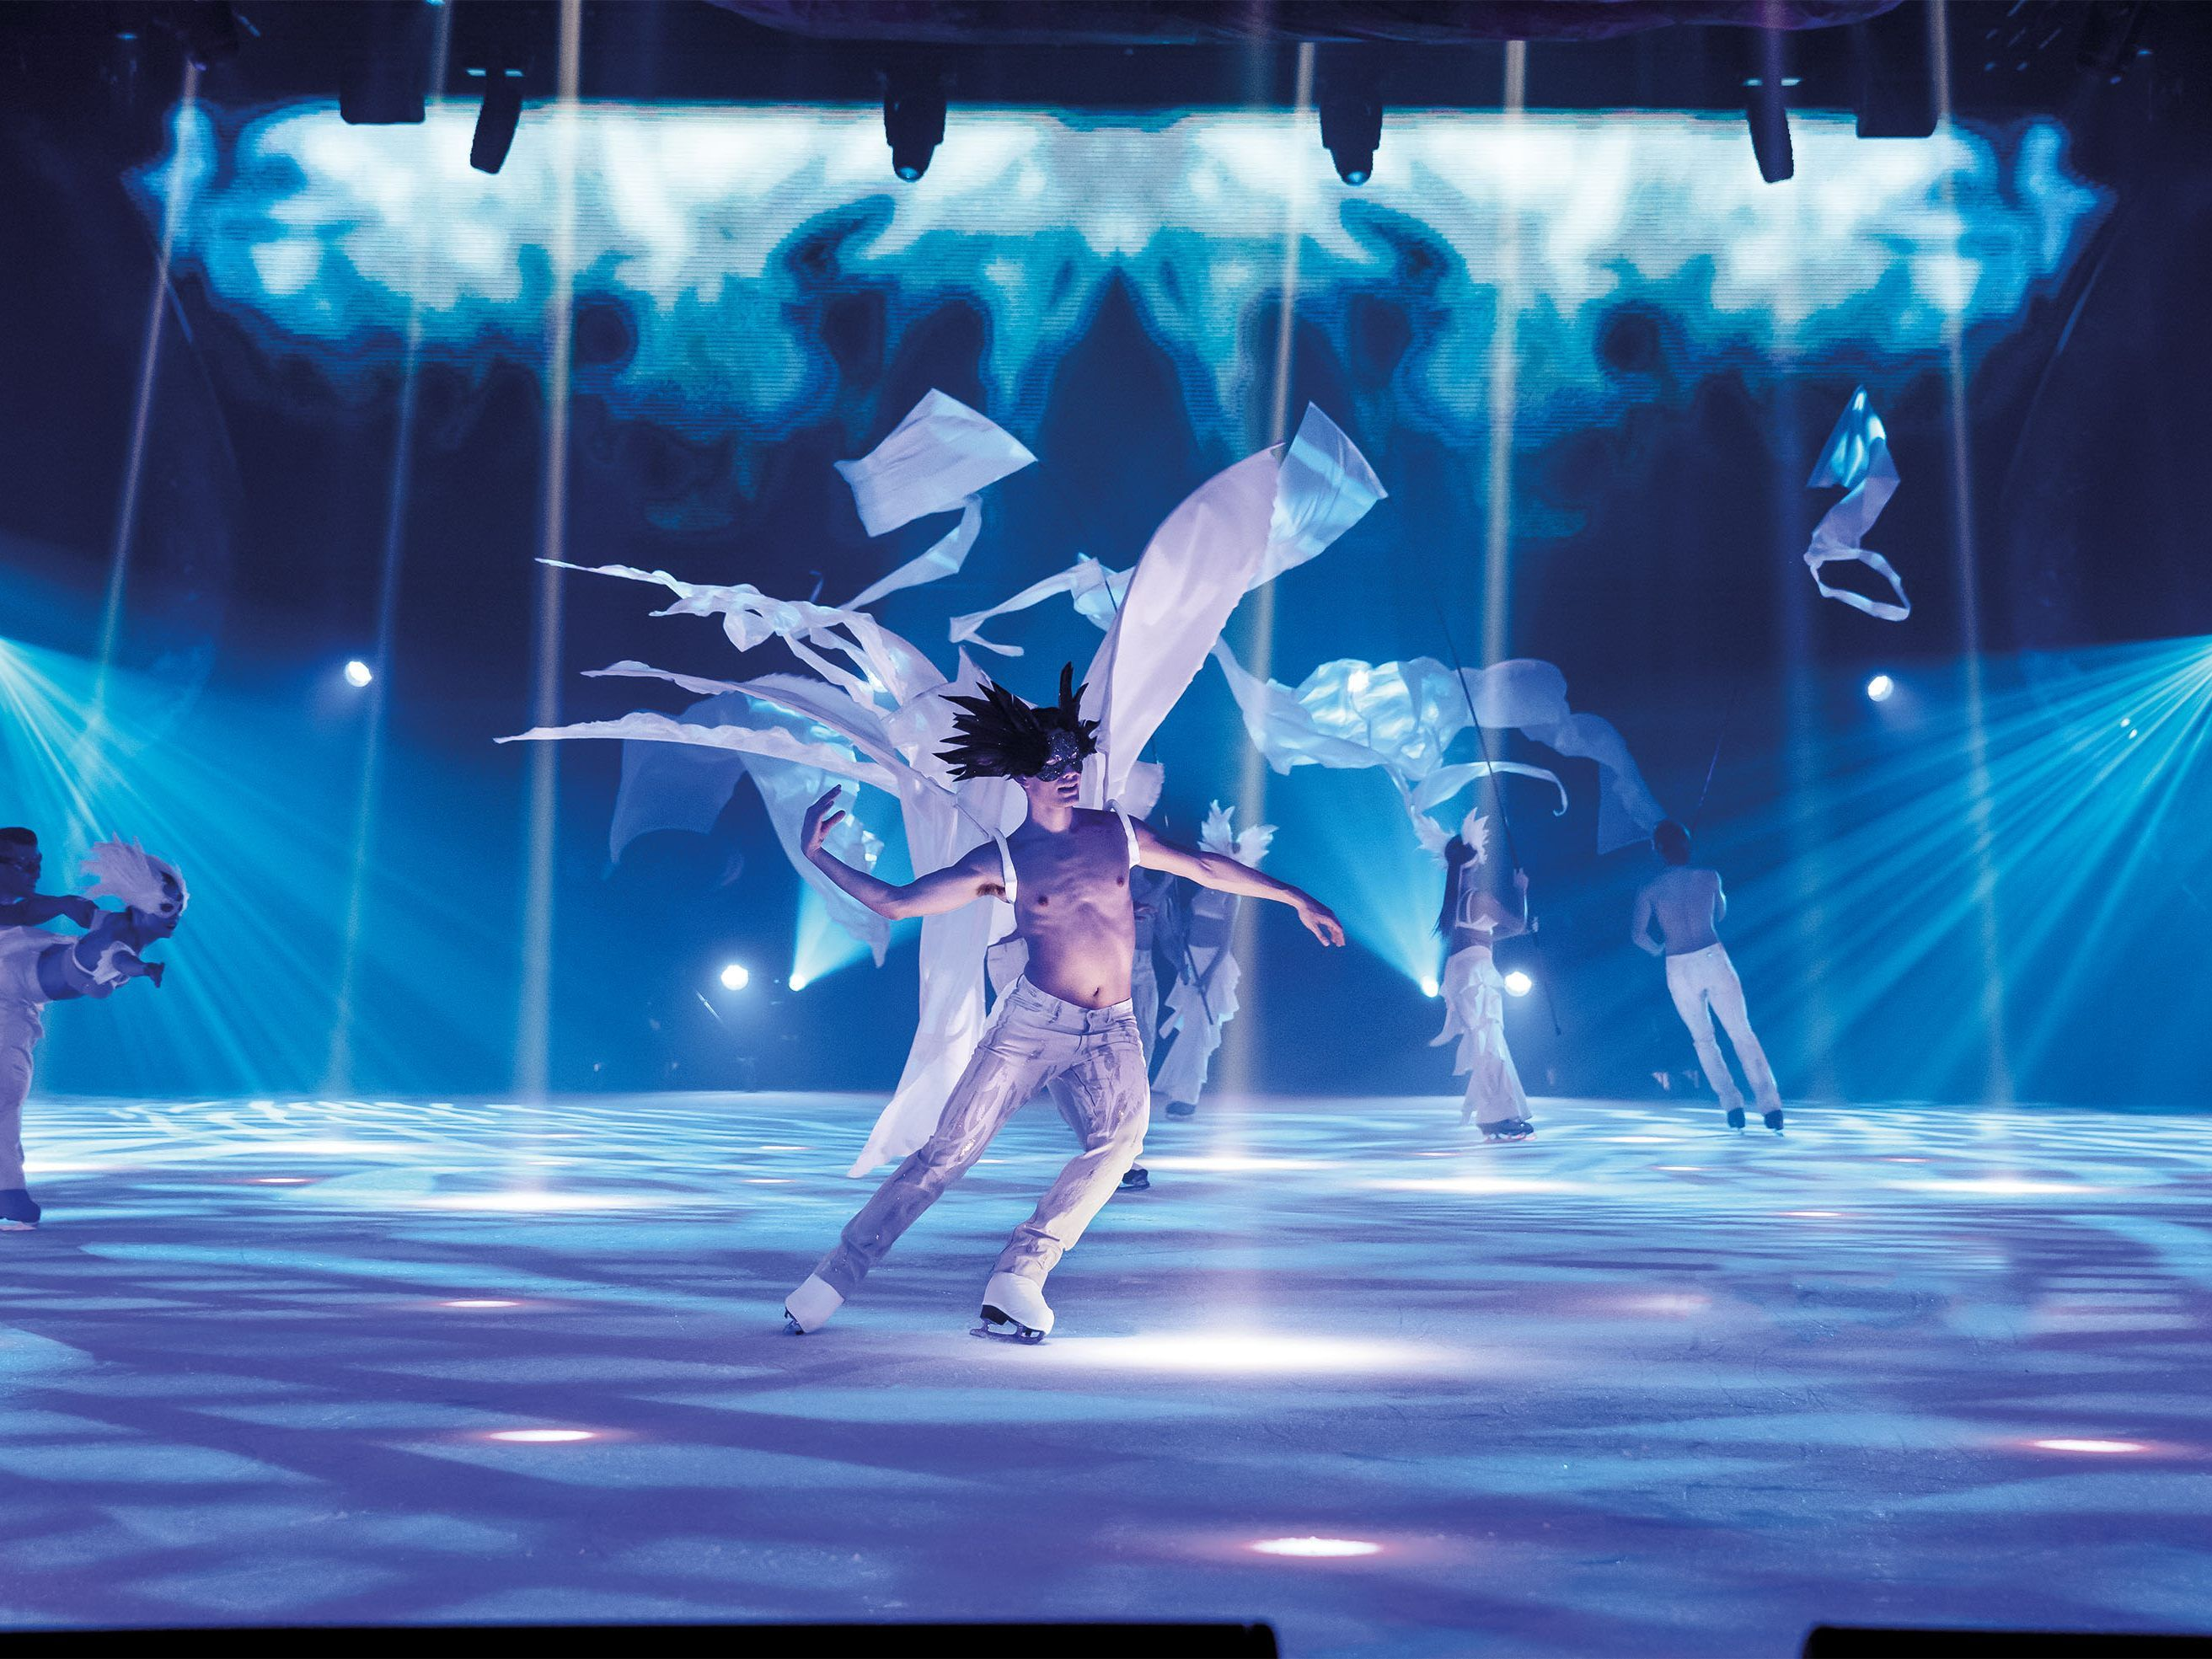 3x2 Tickets für Holiday on Ice in der Wiener Stadthalle gewinnen.